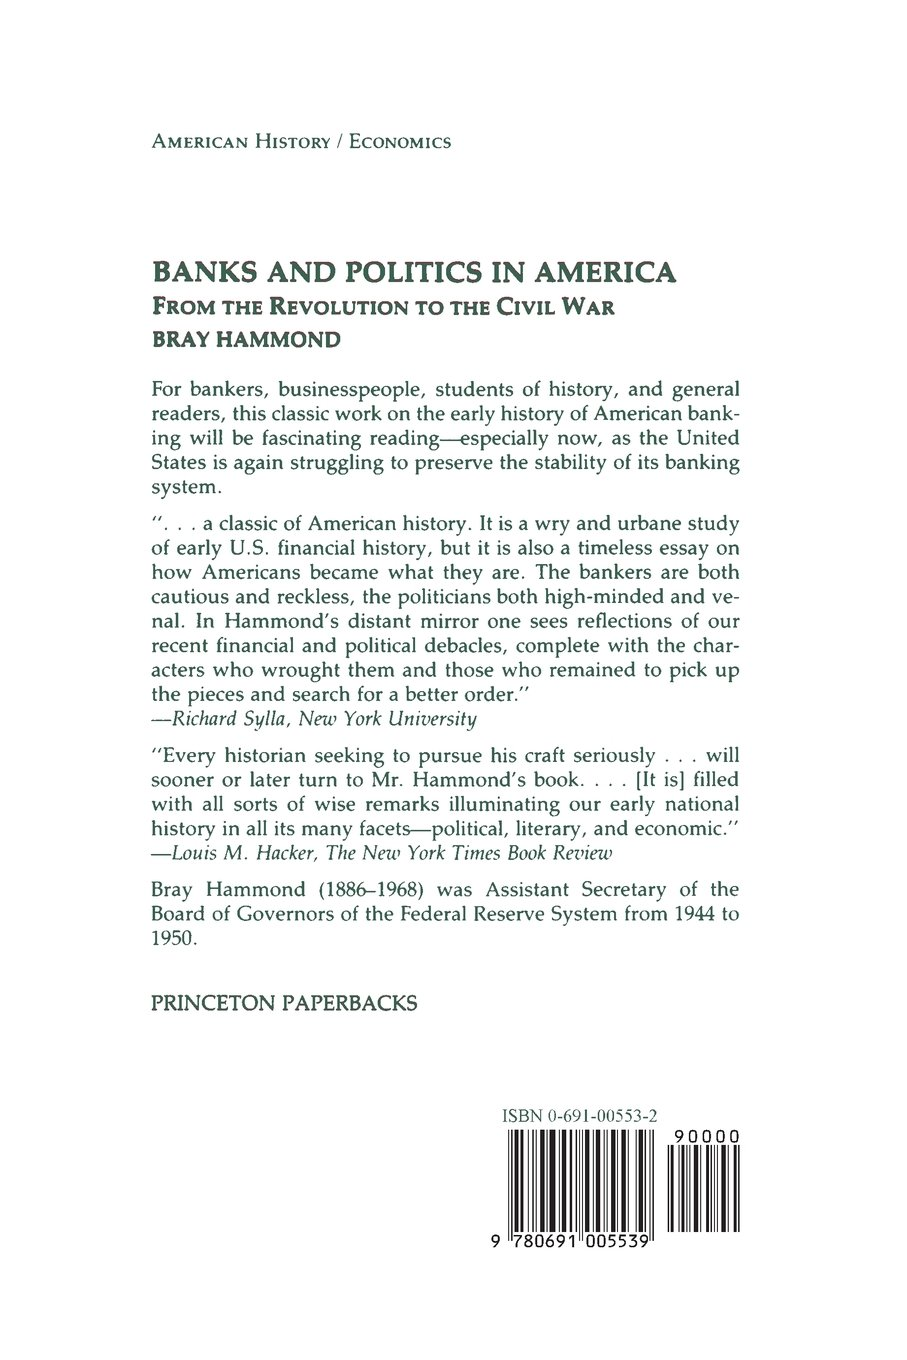 banks and politics in america from the revolution to the civil war banks and politics in america from the revolution to the civil war bray hammond 9780691005539 com books